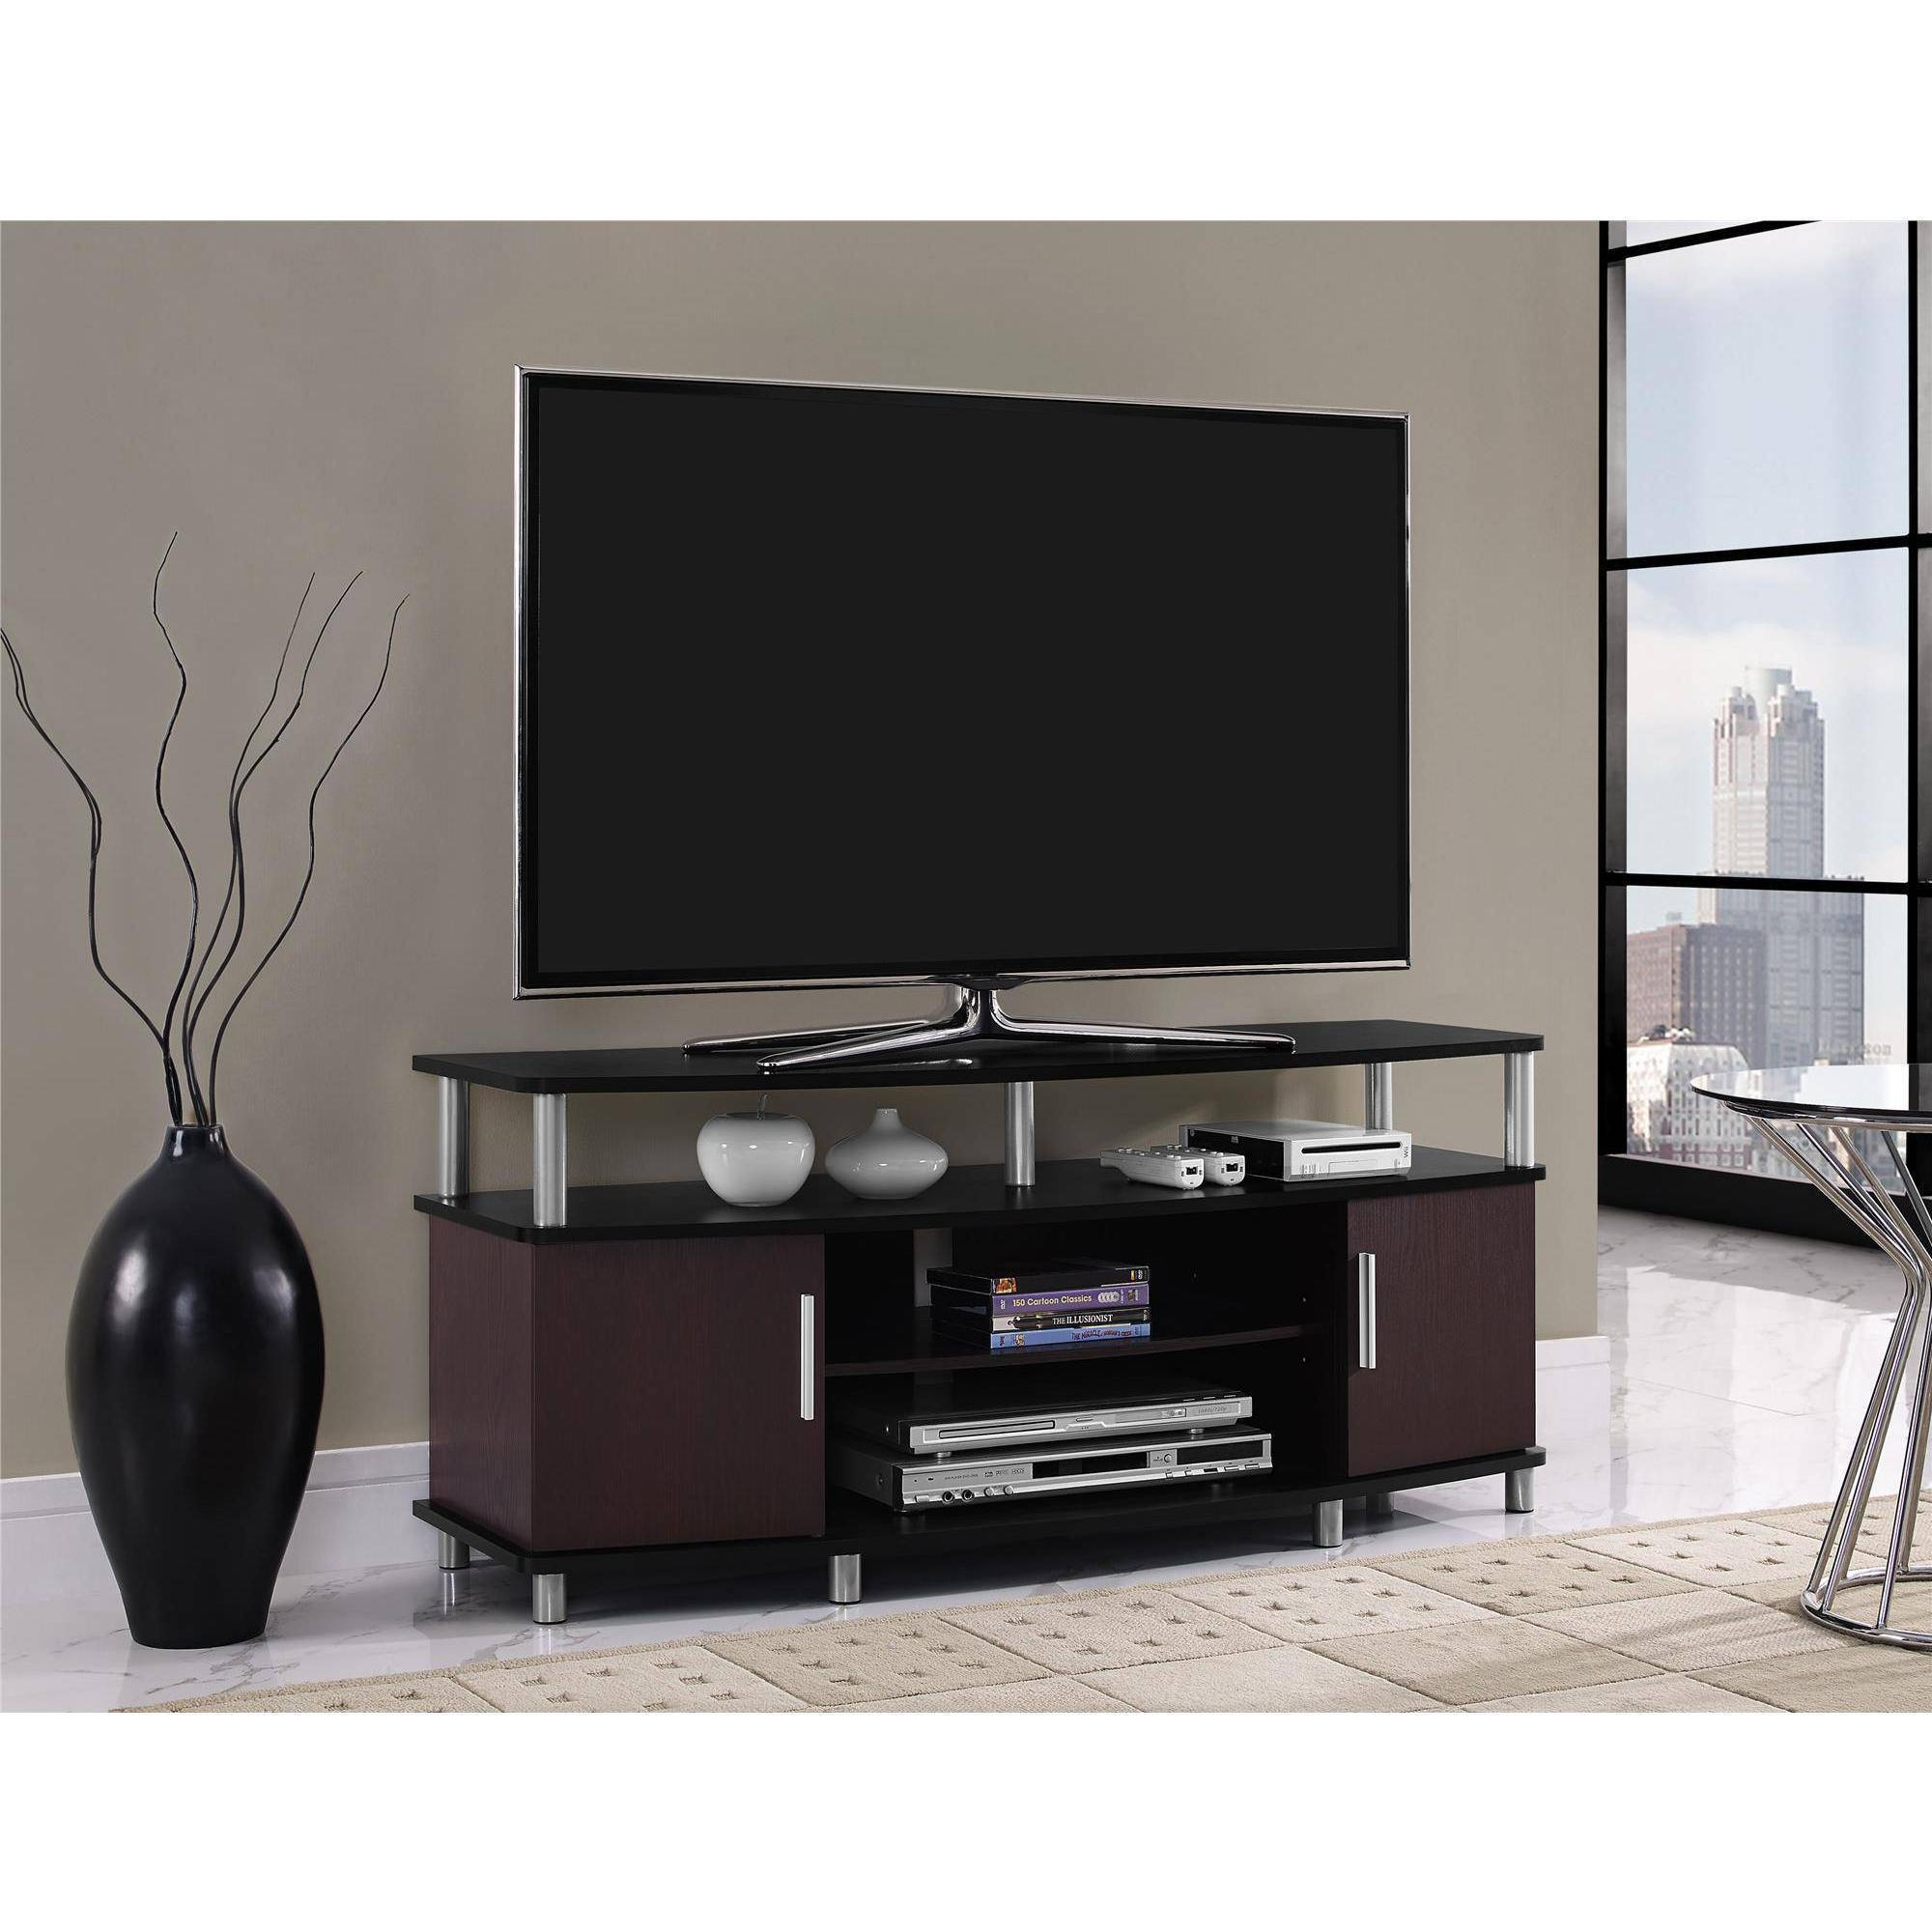 Tv Stands & Entertainment Centers - Walmart with Entertainment Center Tv Stands (Image 8 of 15)